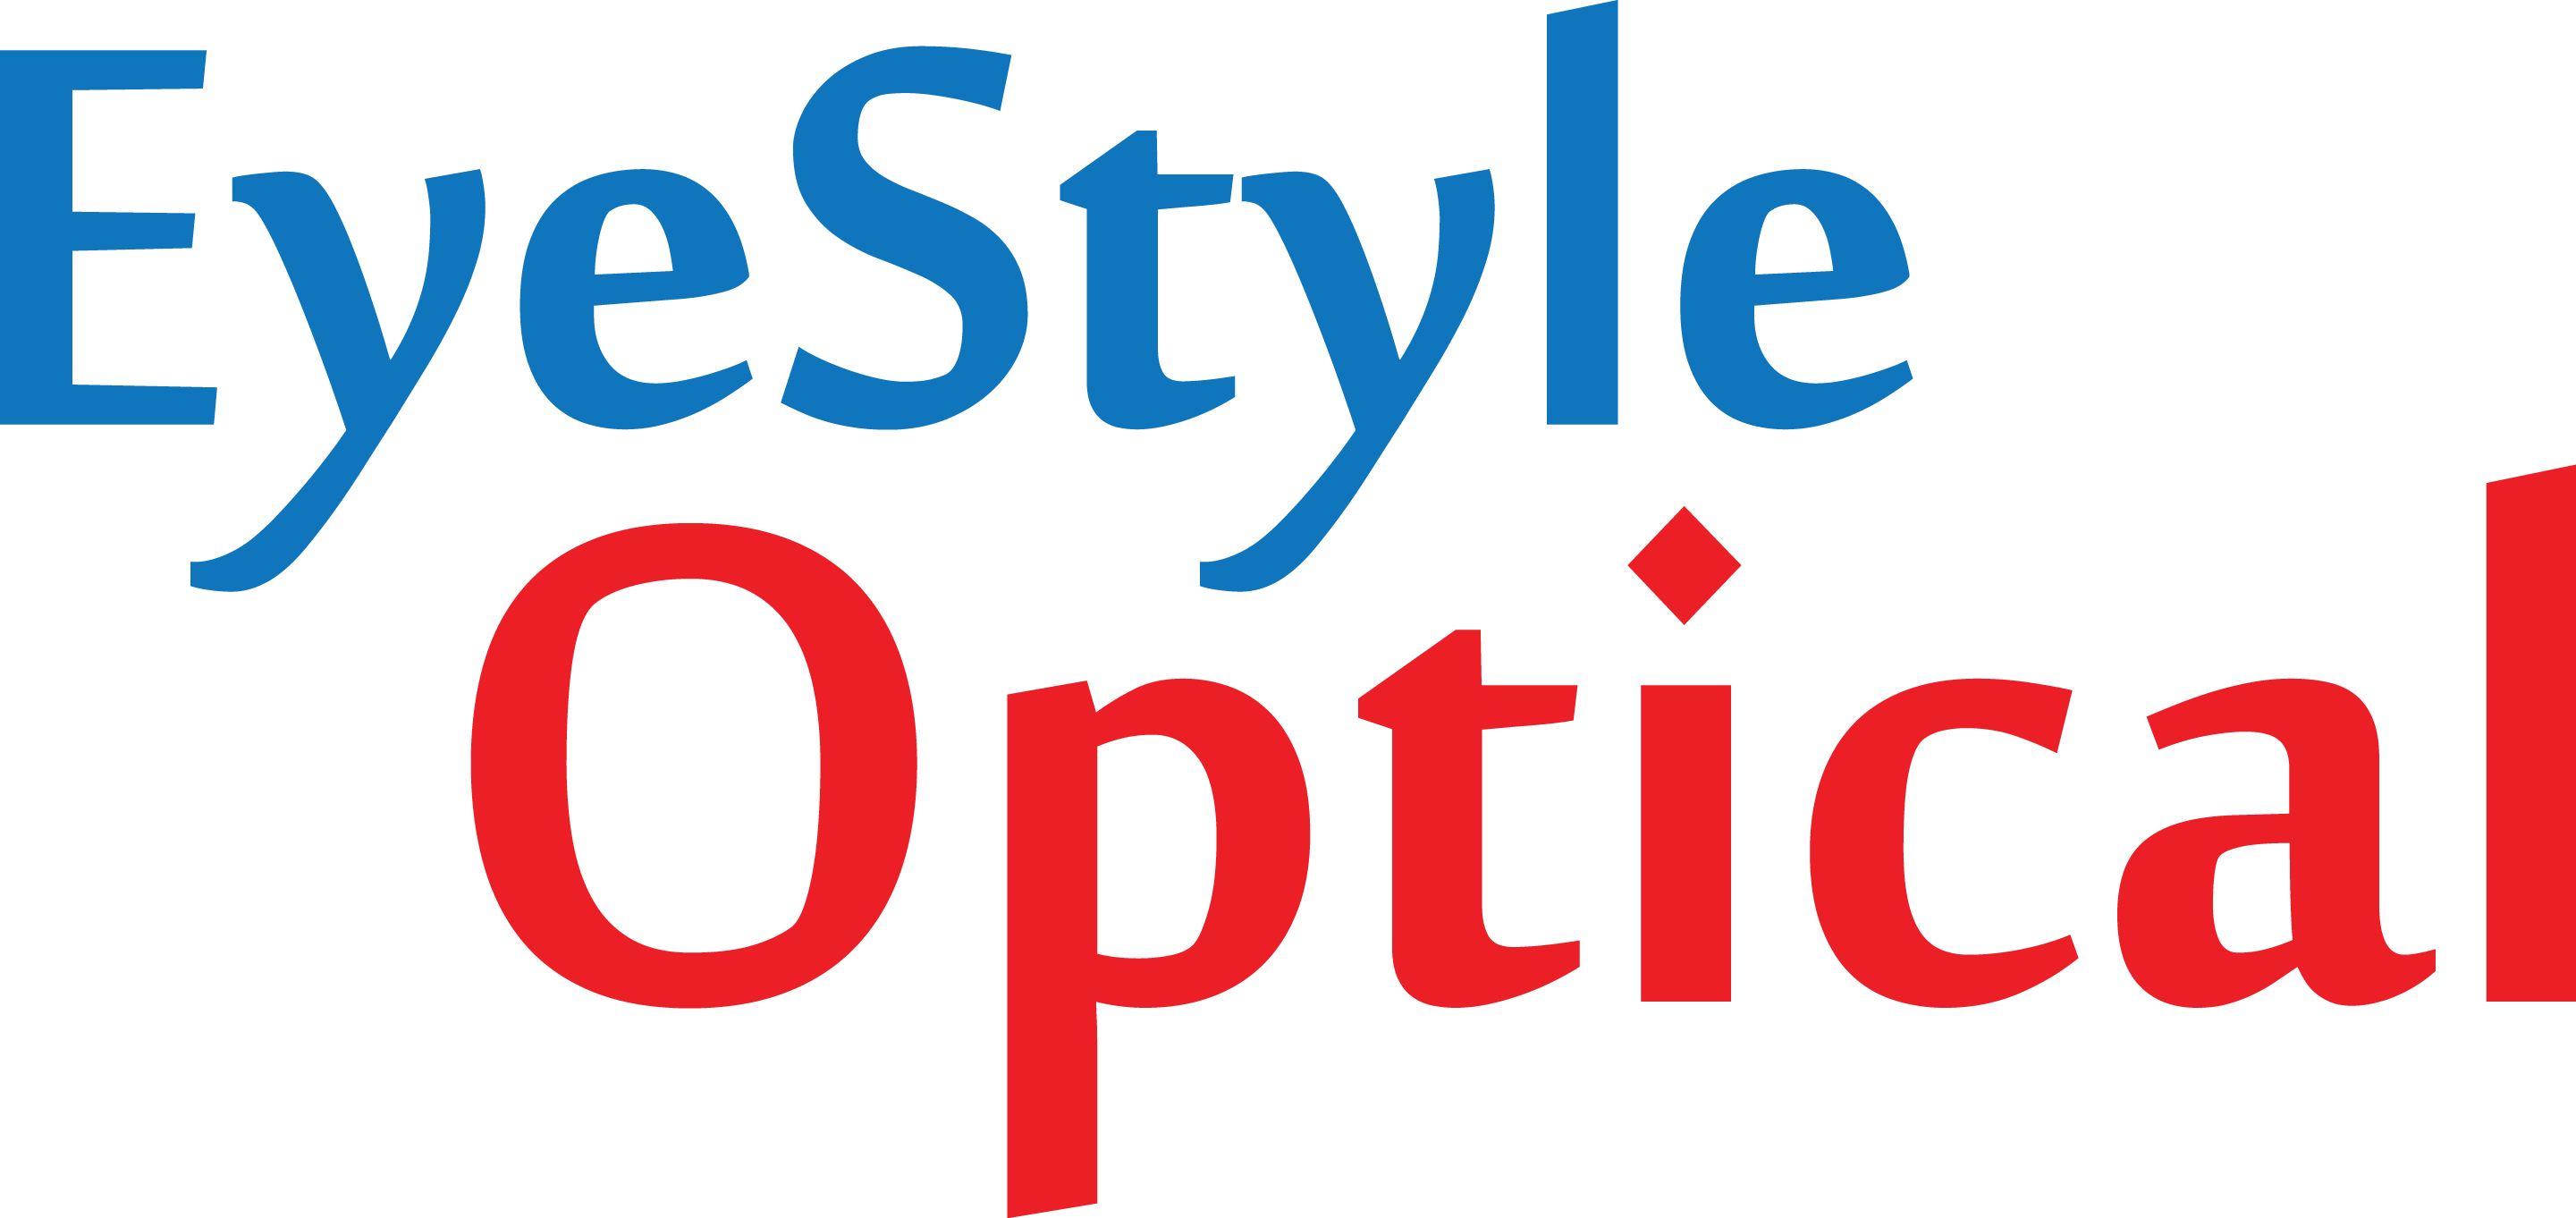 EyeStyle Optical